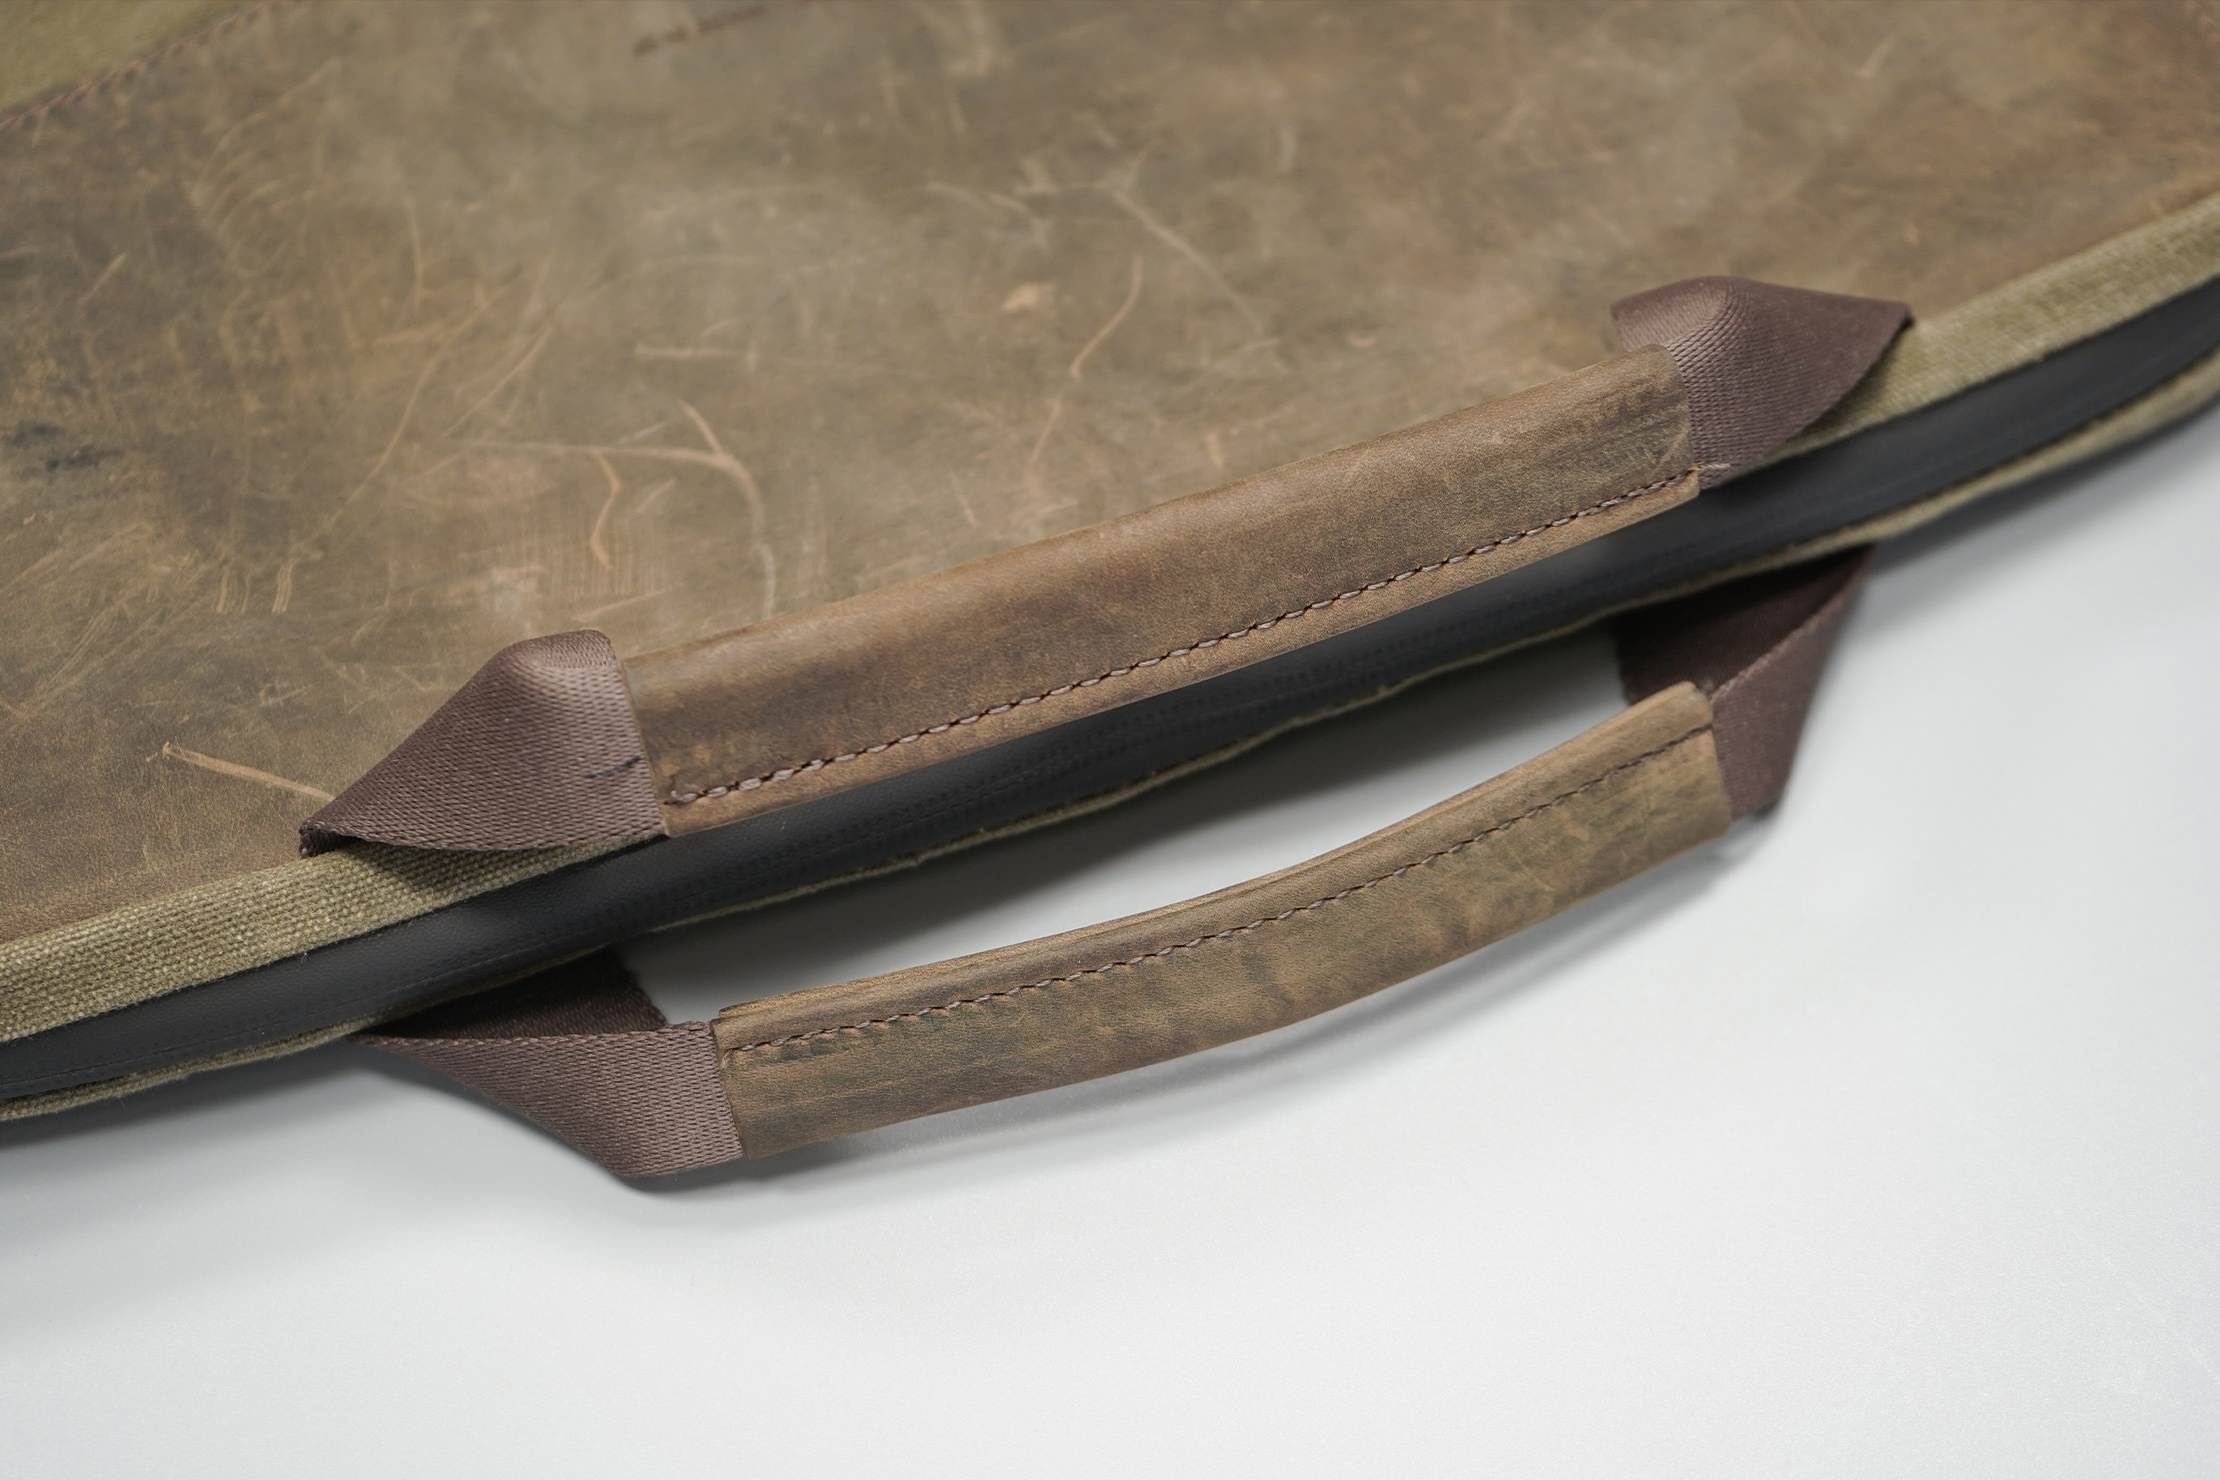 WaterField Designs Outback Duo Laptop Brief | The handles are also clad in leather